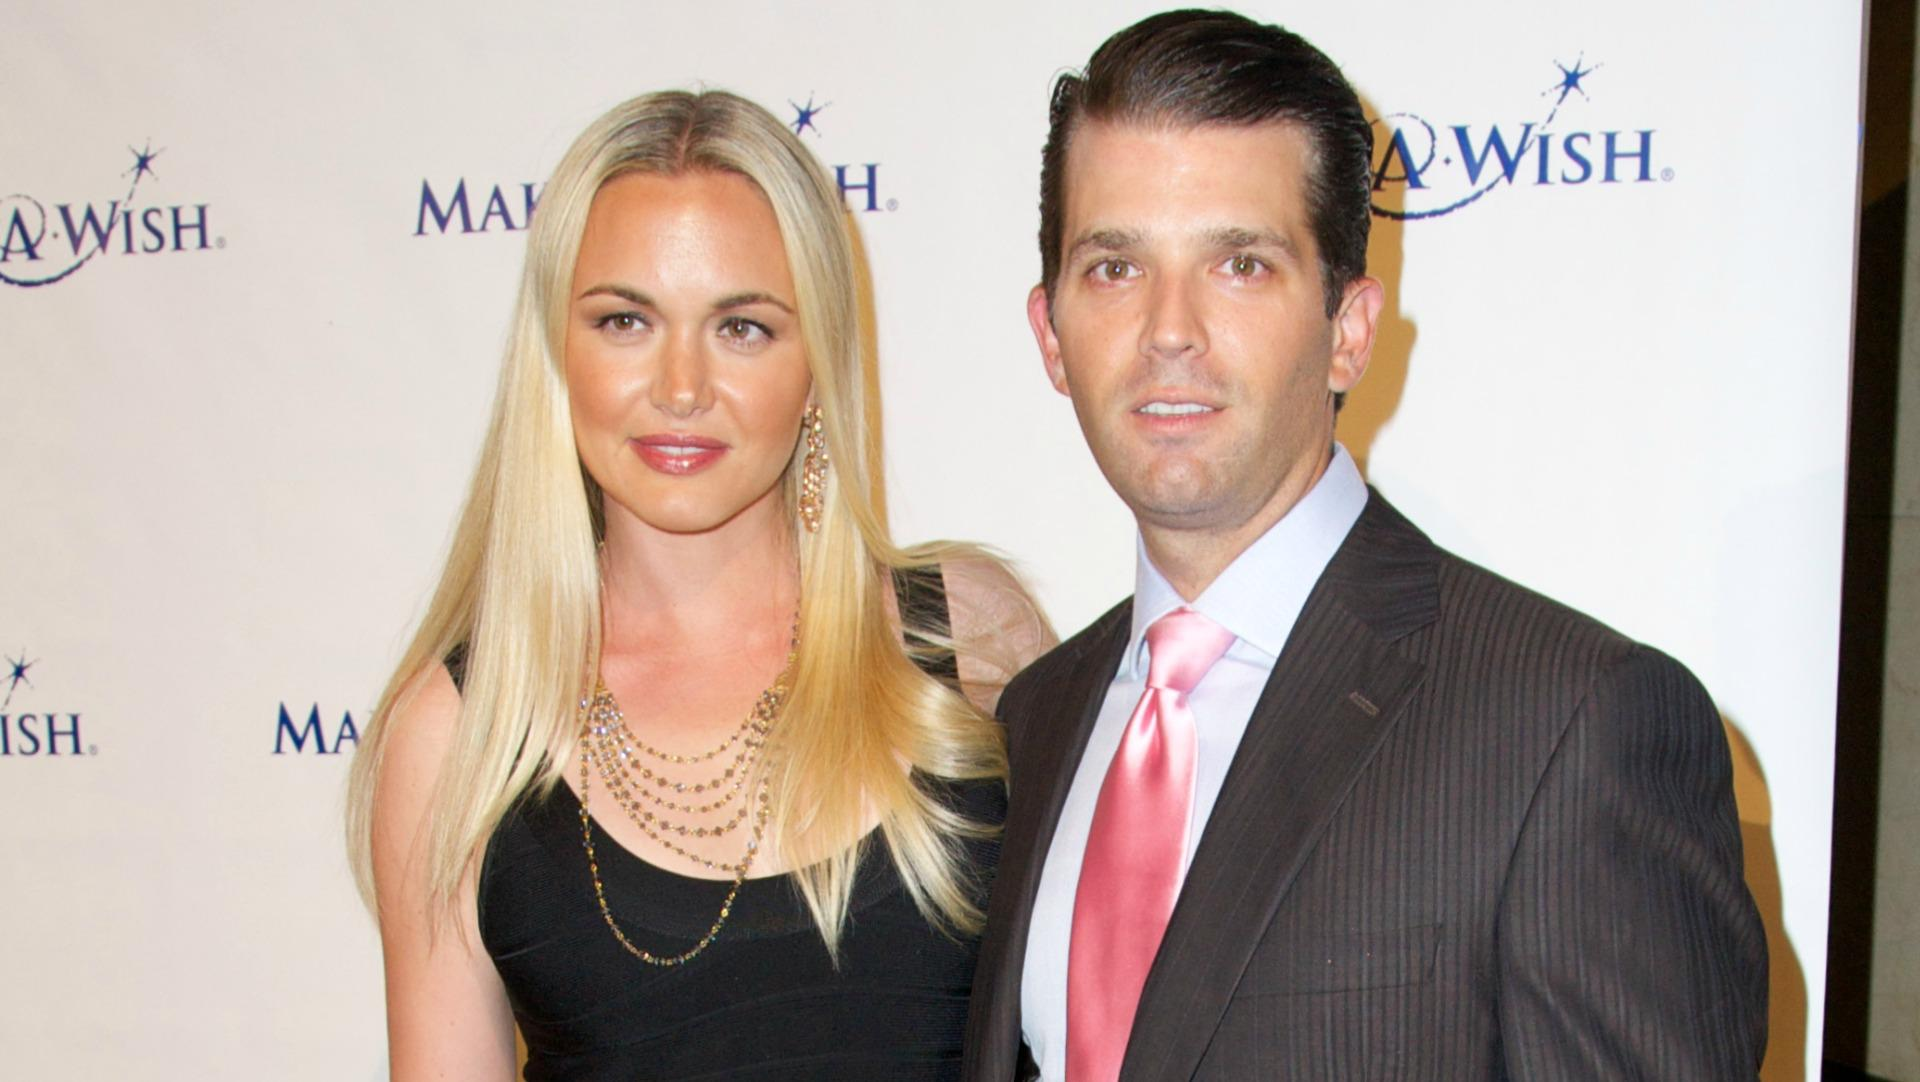 Donald Trump jr. and his wife, Vanessa.